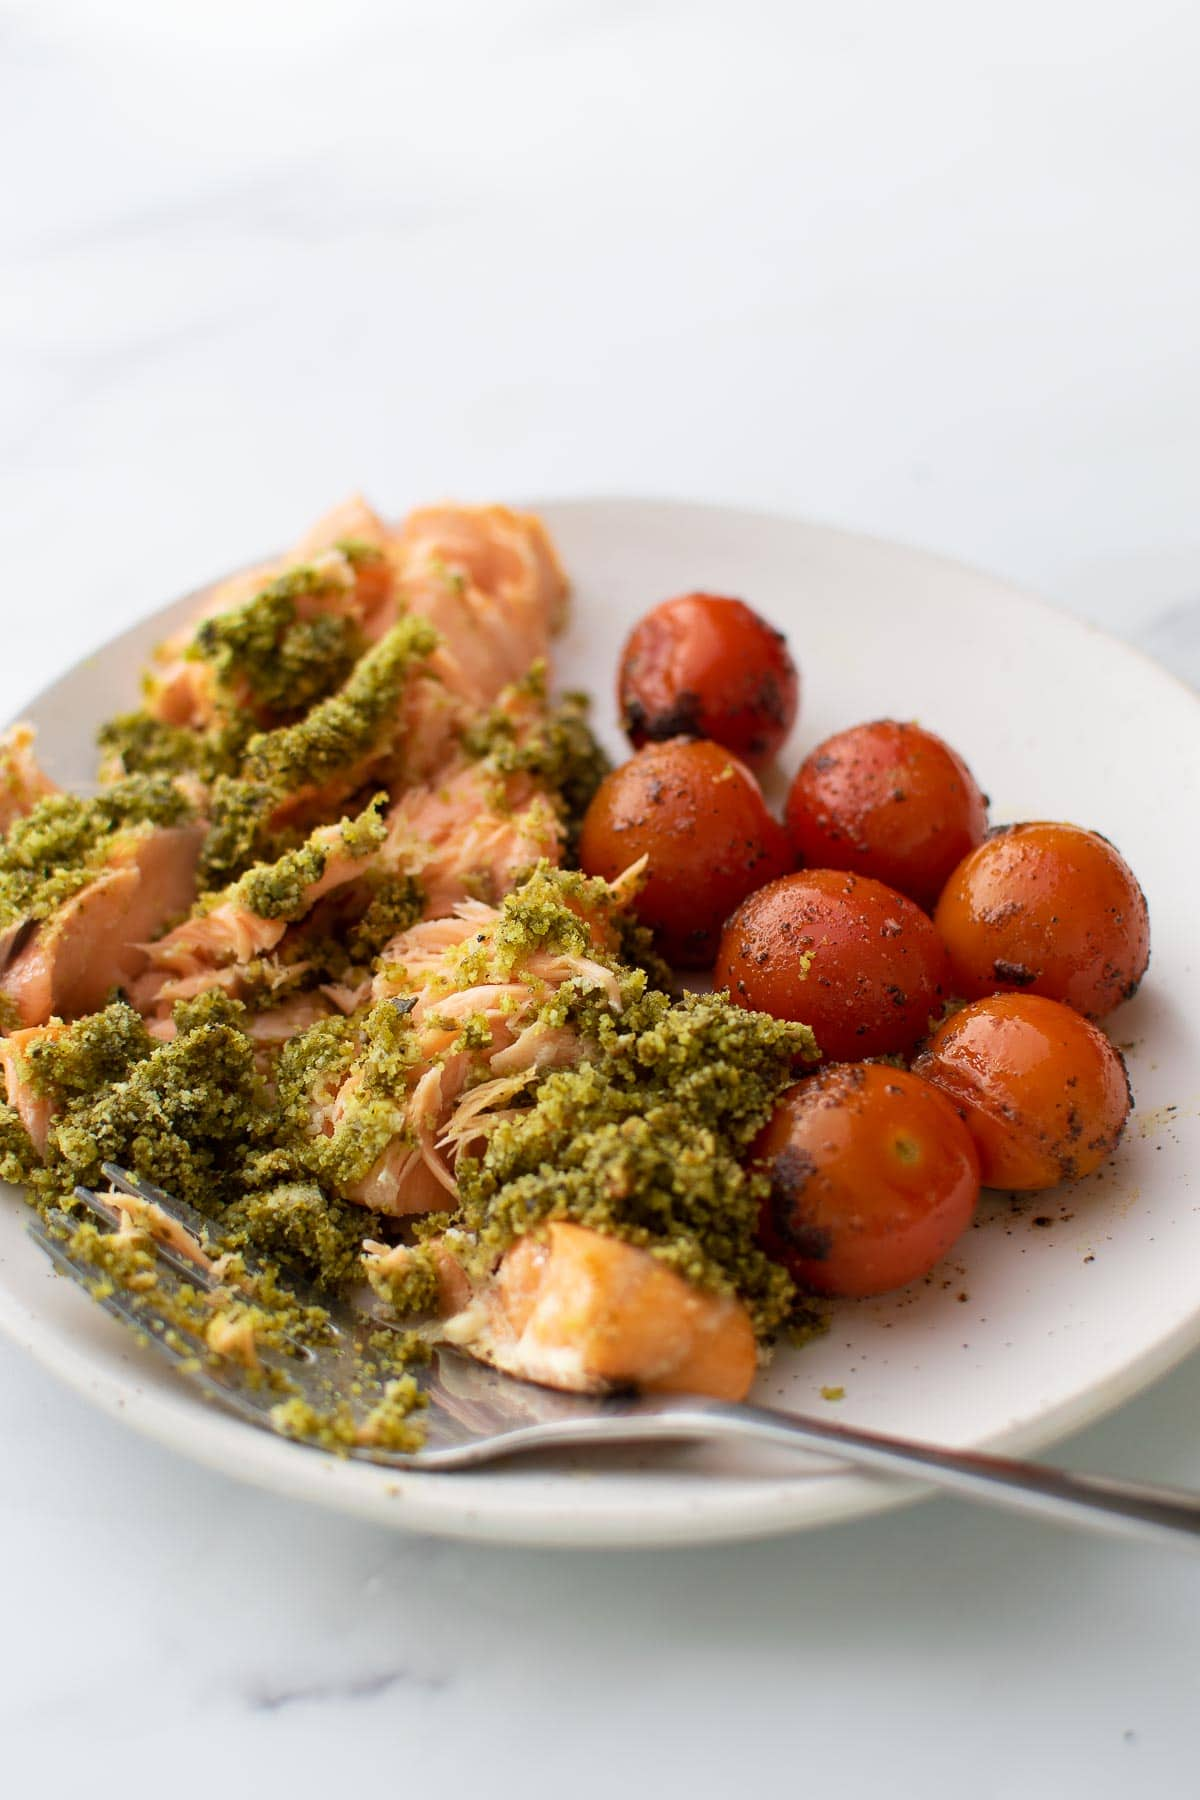 Smashed pesto crusted salmon on a plate with cherry tomatoes.